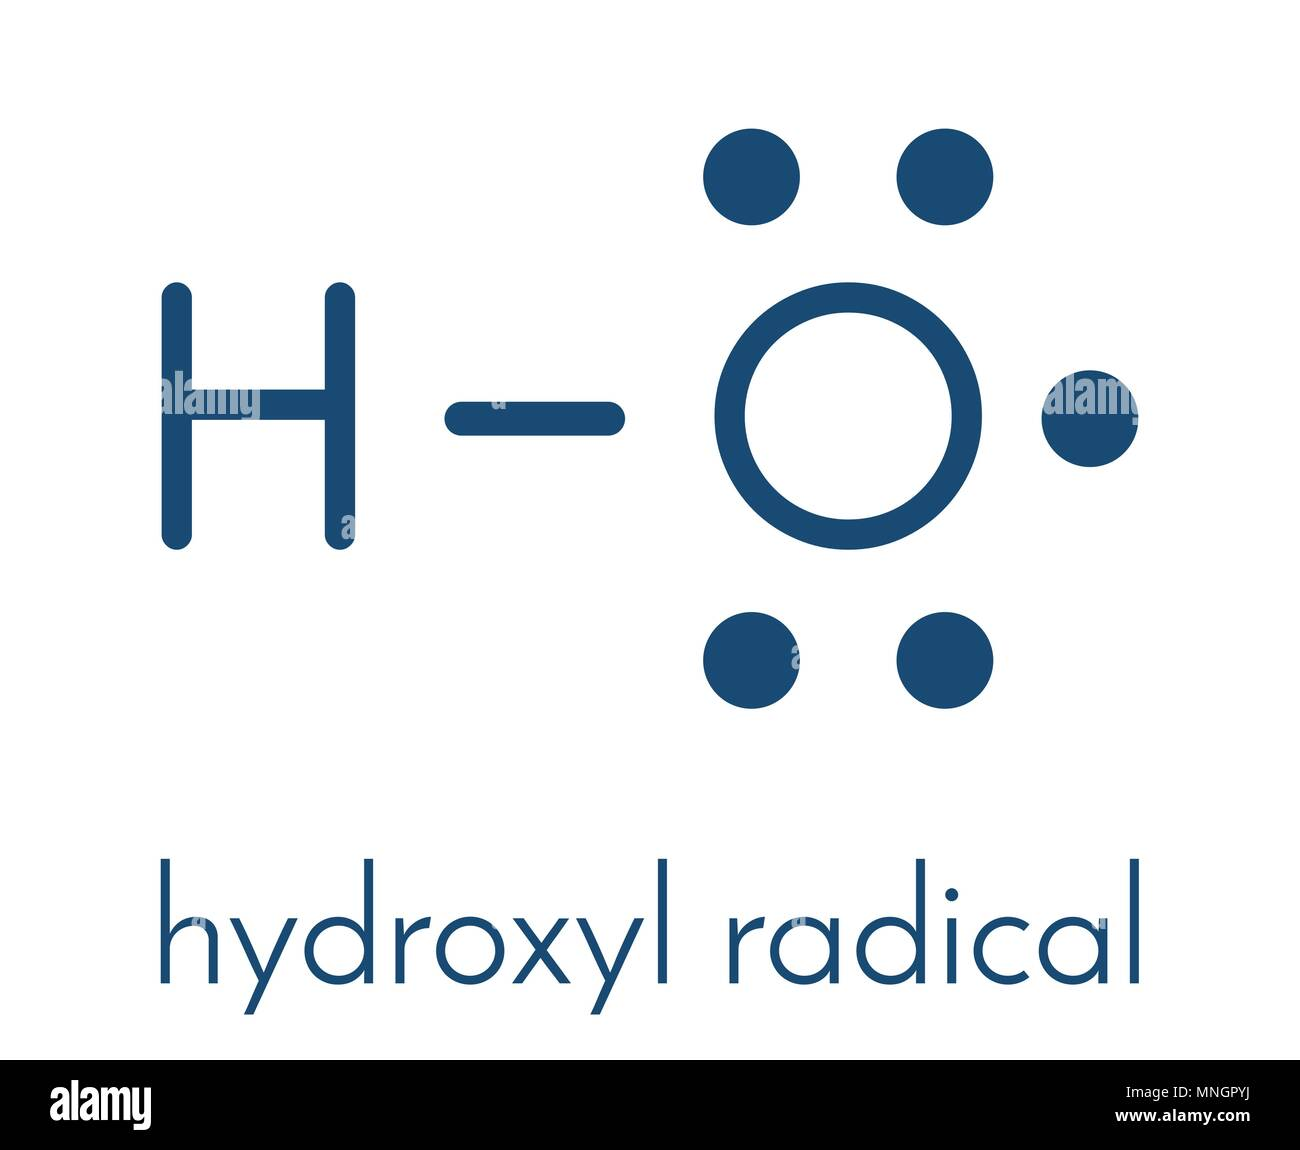 Hydroxyl radical. Used by macrophages (immune cells) to destroy pathogens. Skeletal formula. - Stock Image